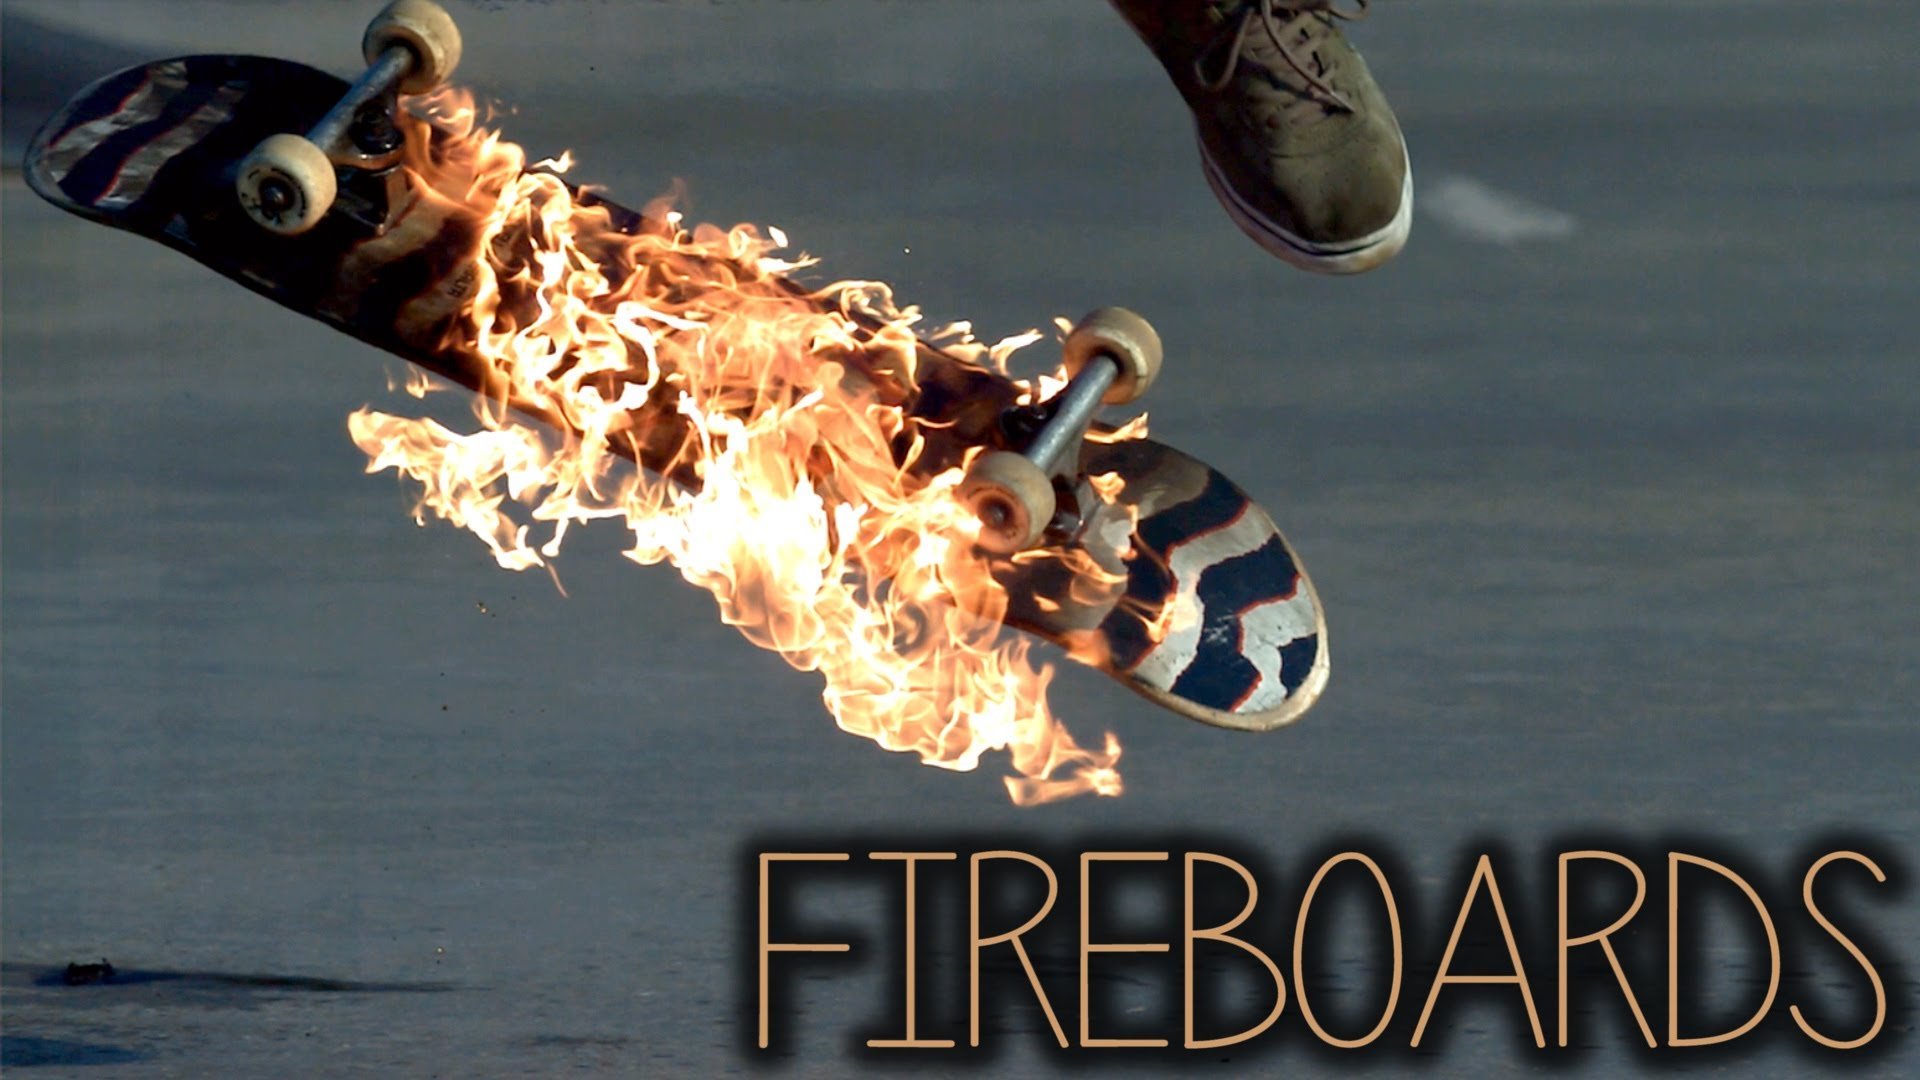 Amazing Slow Motion Video of Fiery Skateboard Tricks